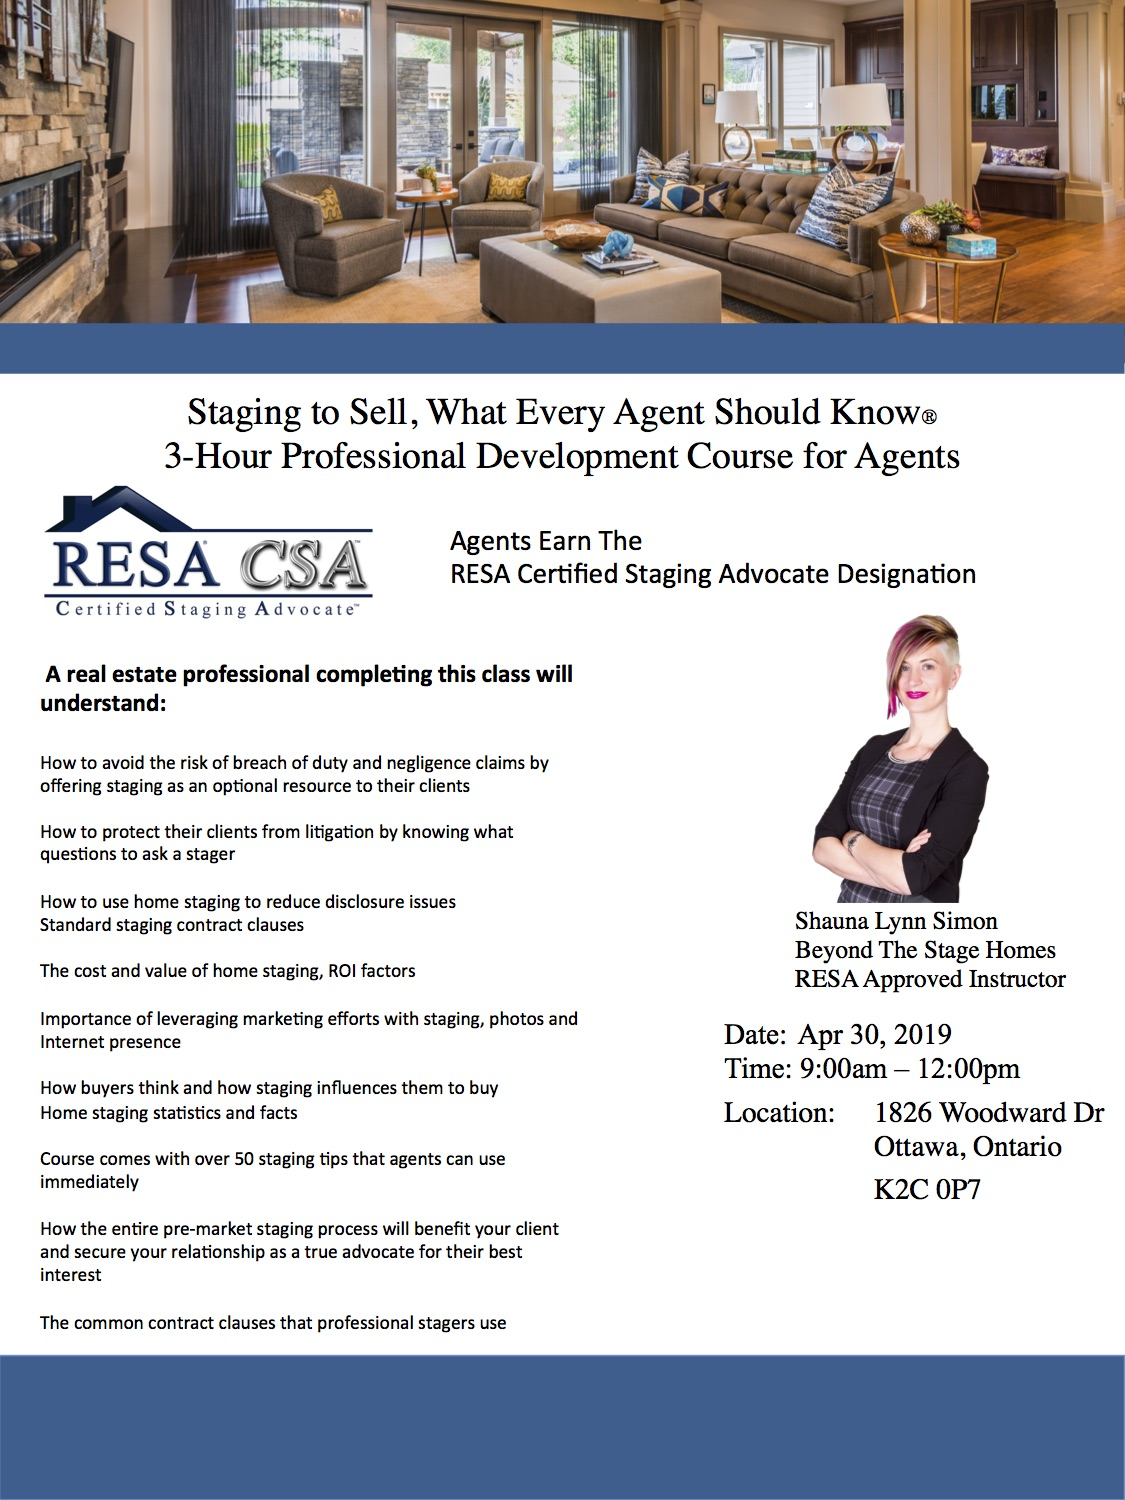 KWAR Staging to Sell Flyer - 30Apr19.jpg